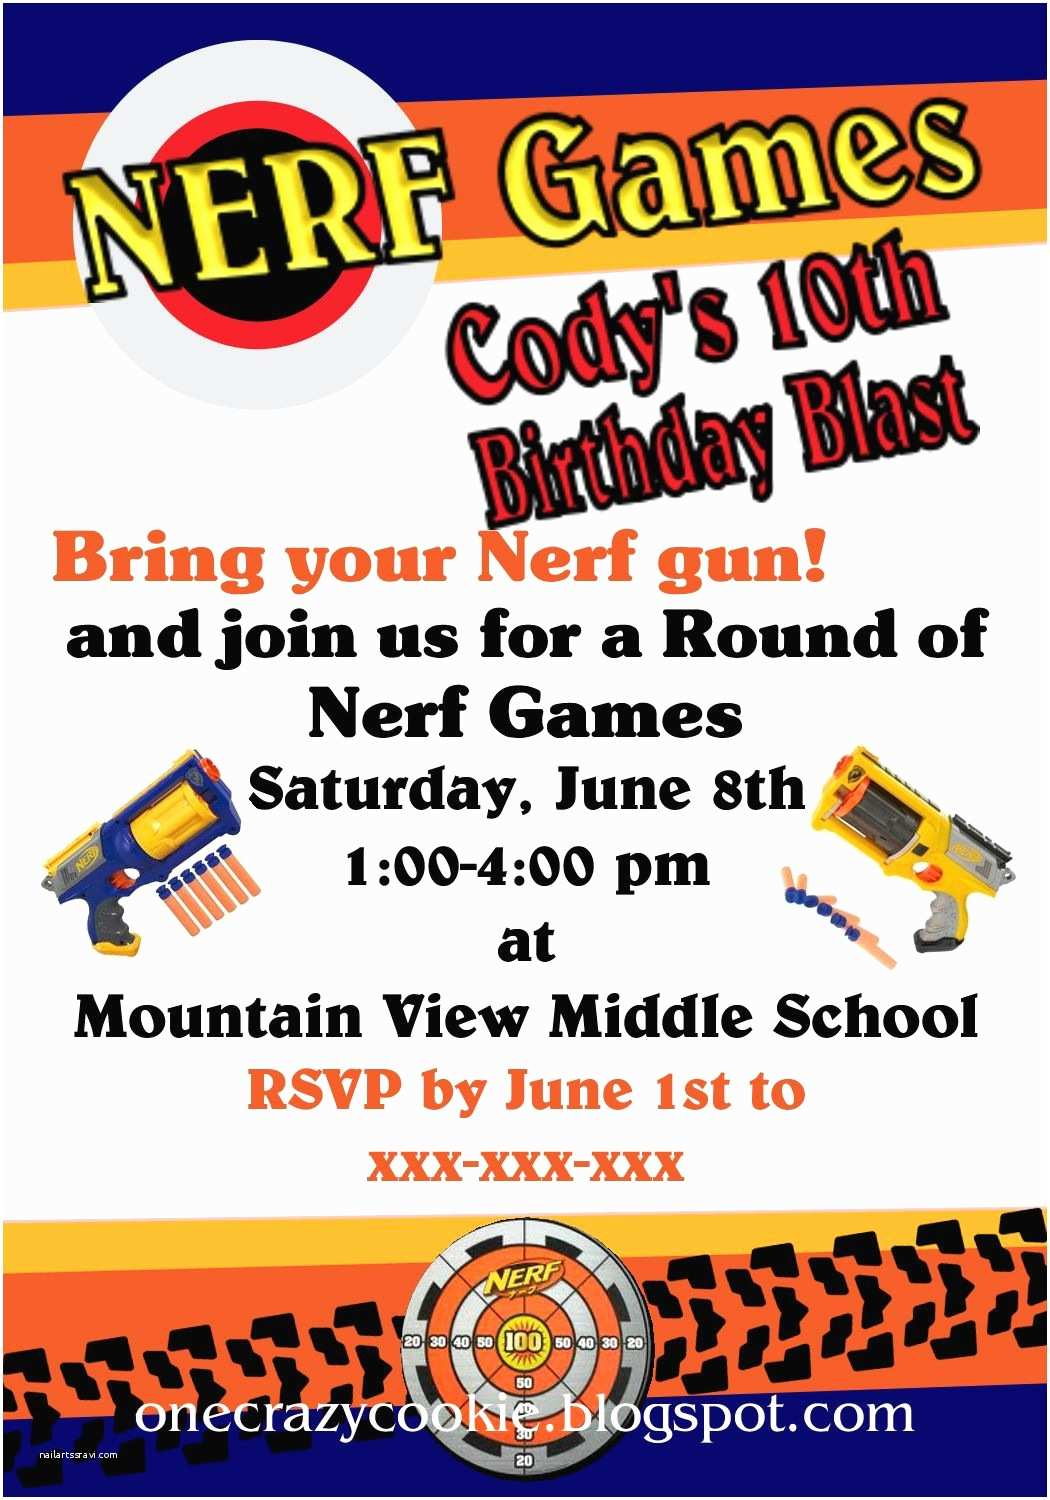 Nerf Birthday  Invitations E Crazy Cookie Using My Creative Side A Nerf